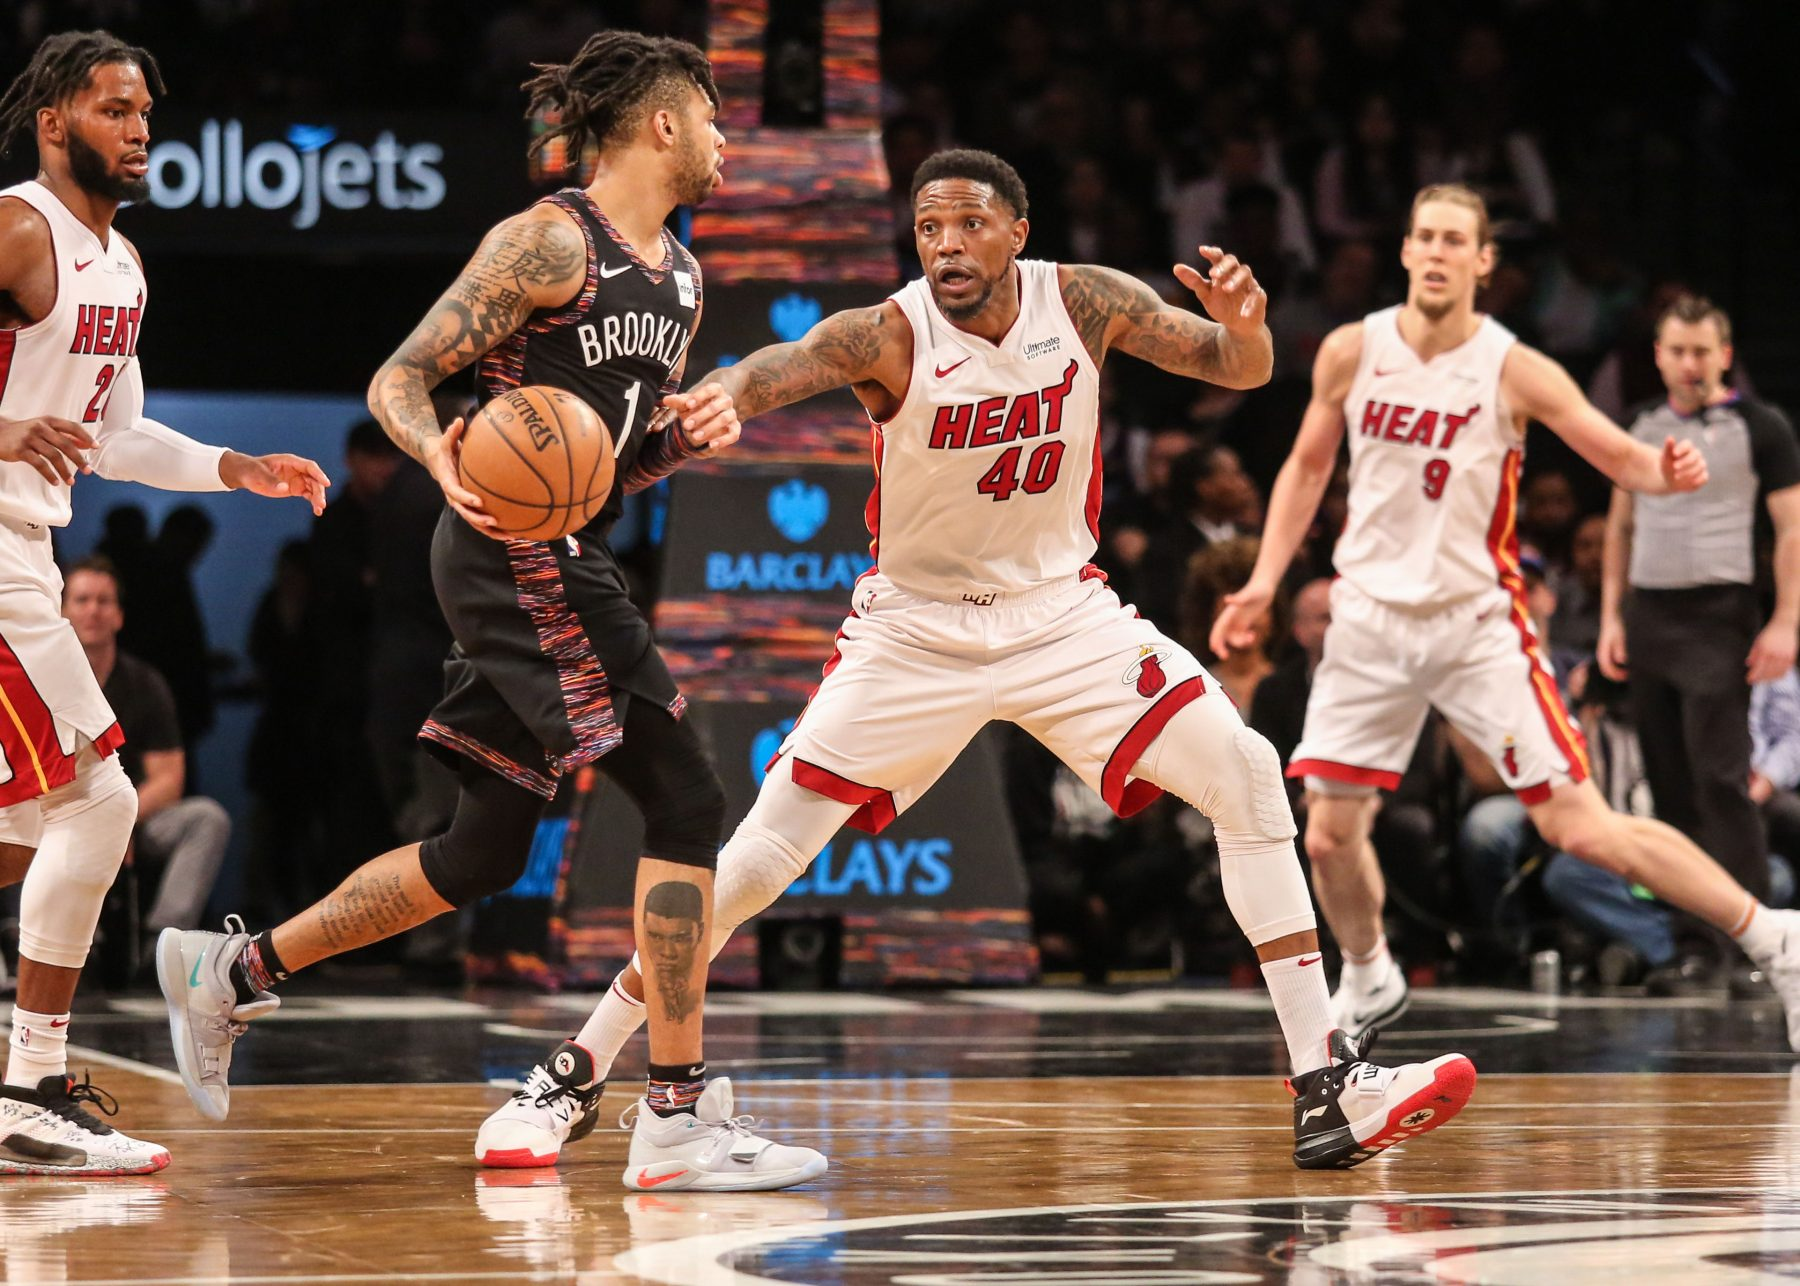 Udonis Haslem, D'Angelo Russell, and Justise Wislow